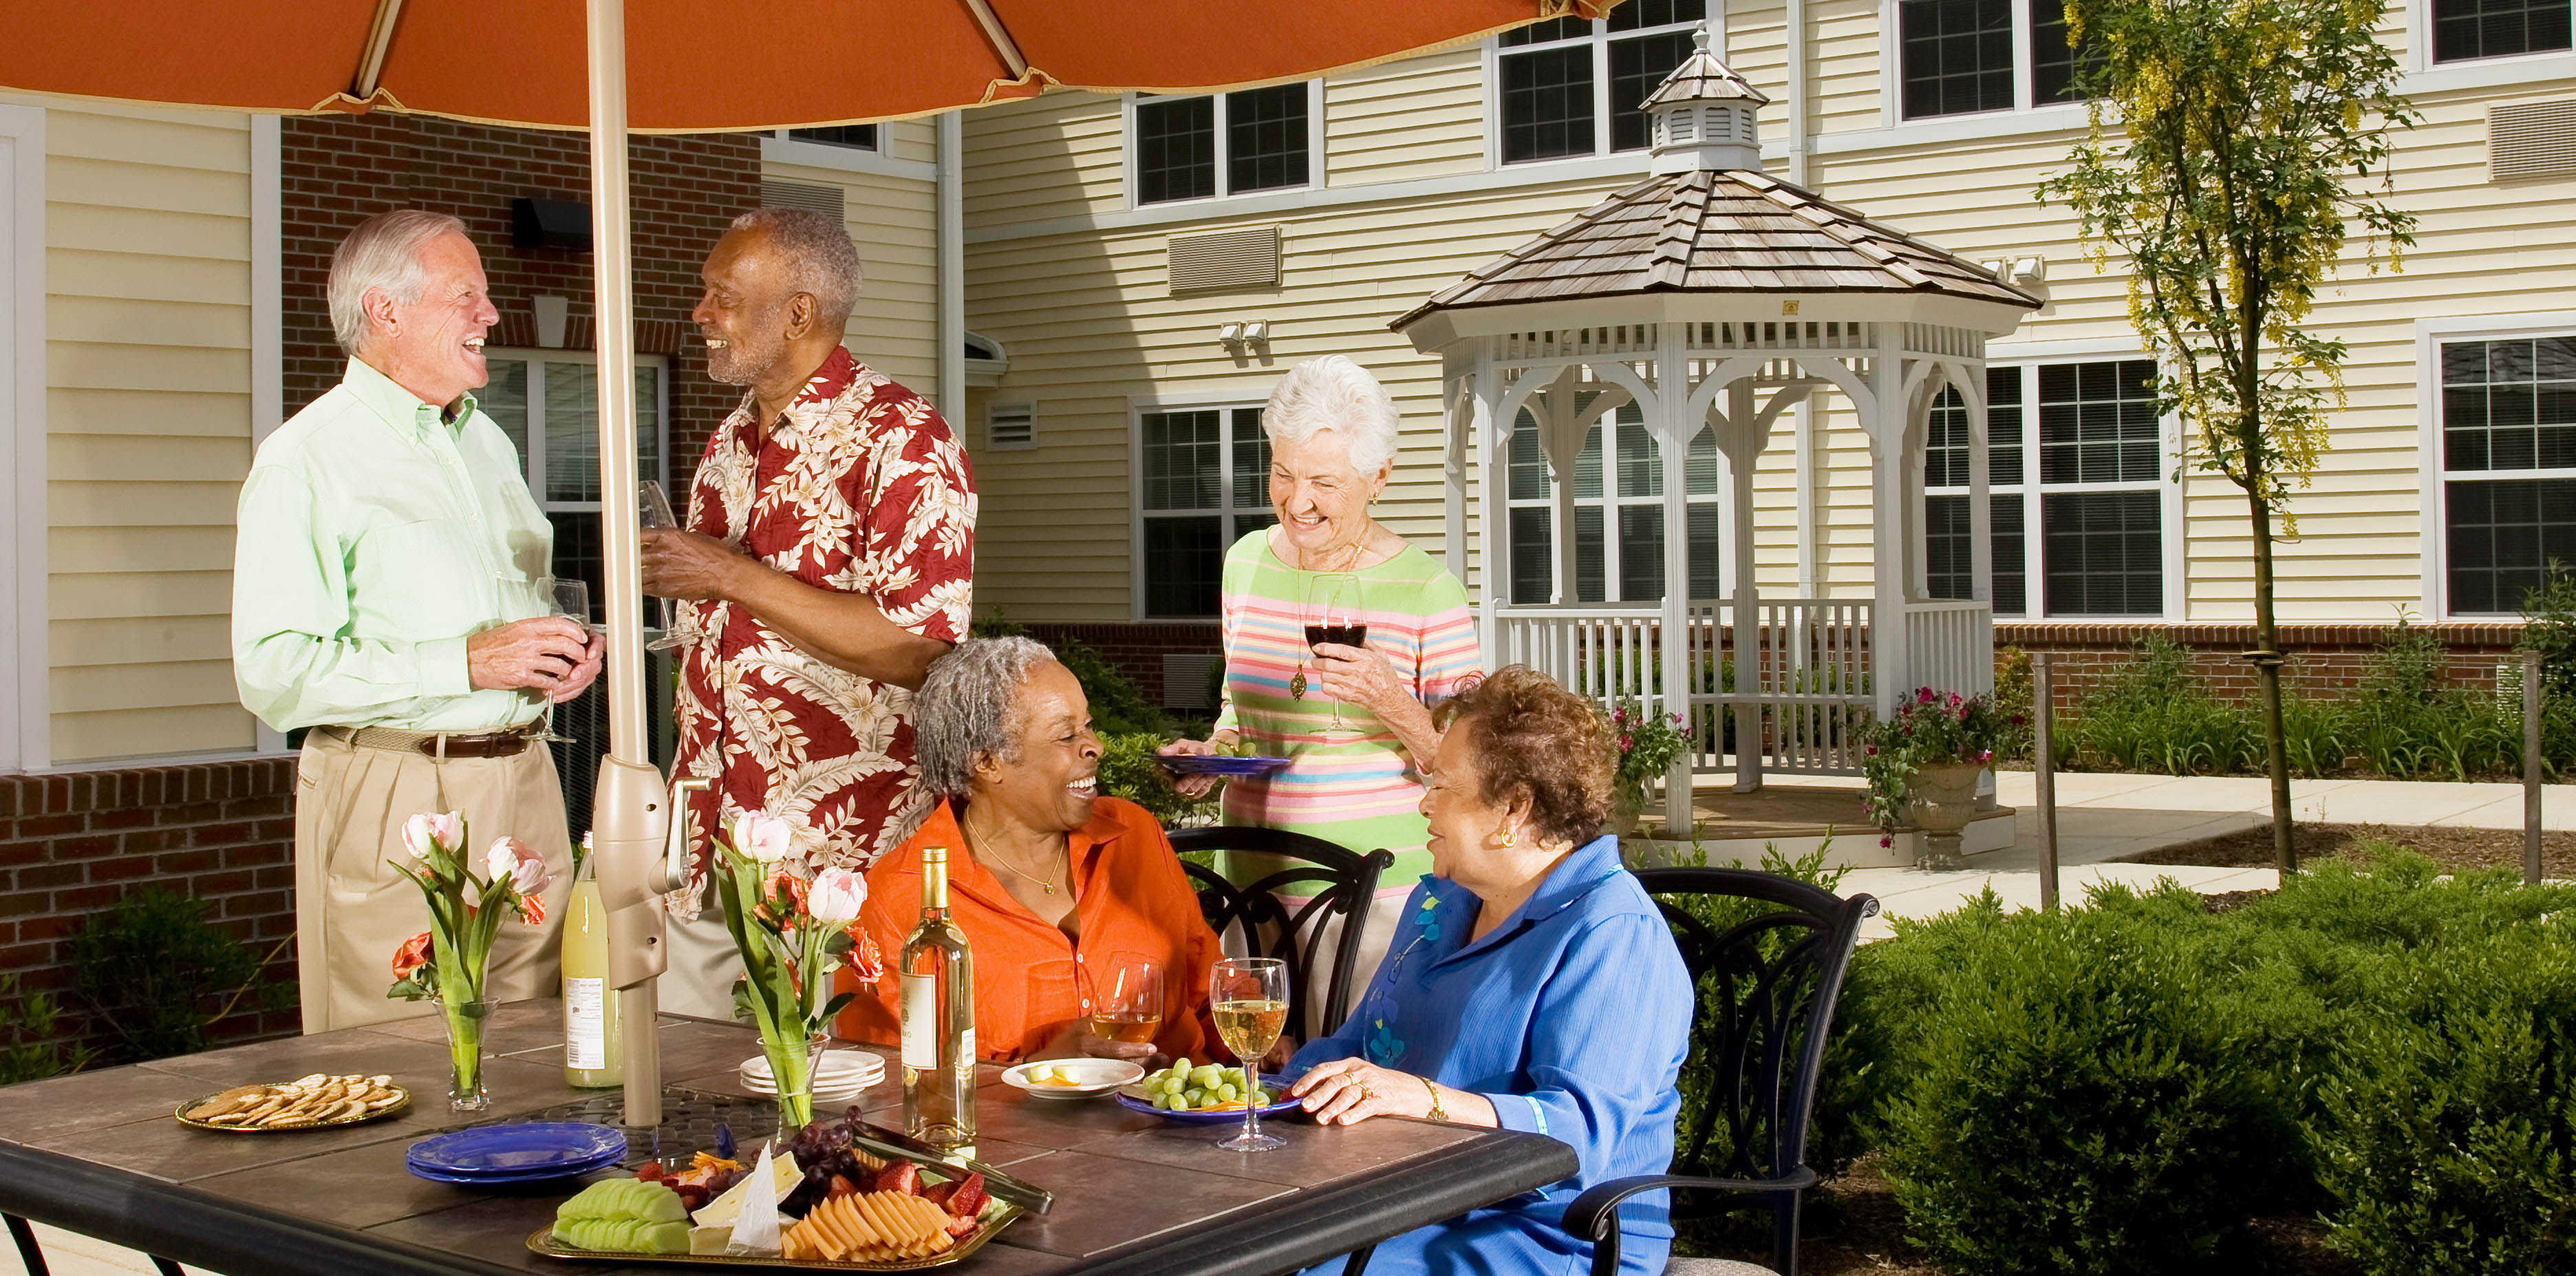 A group of senior residents enjoying the courtyard and snacks.